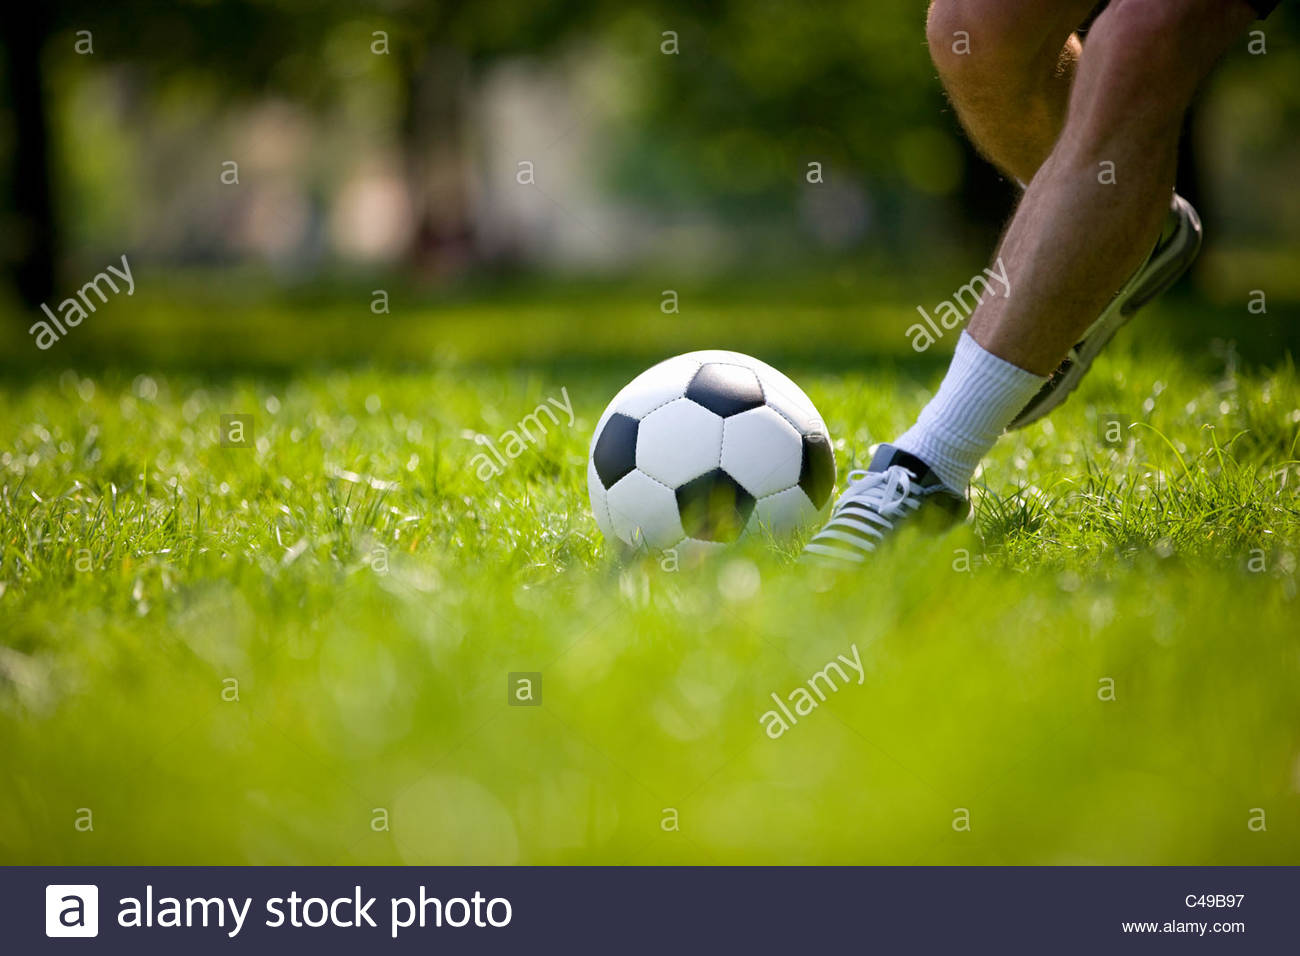 A young man kicking a football outdoors - Stock Image